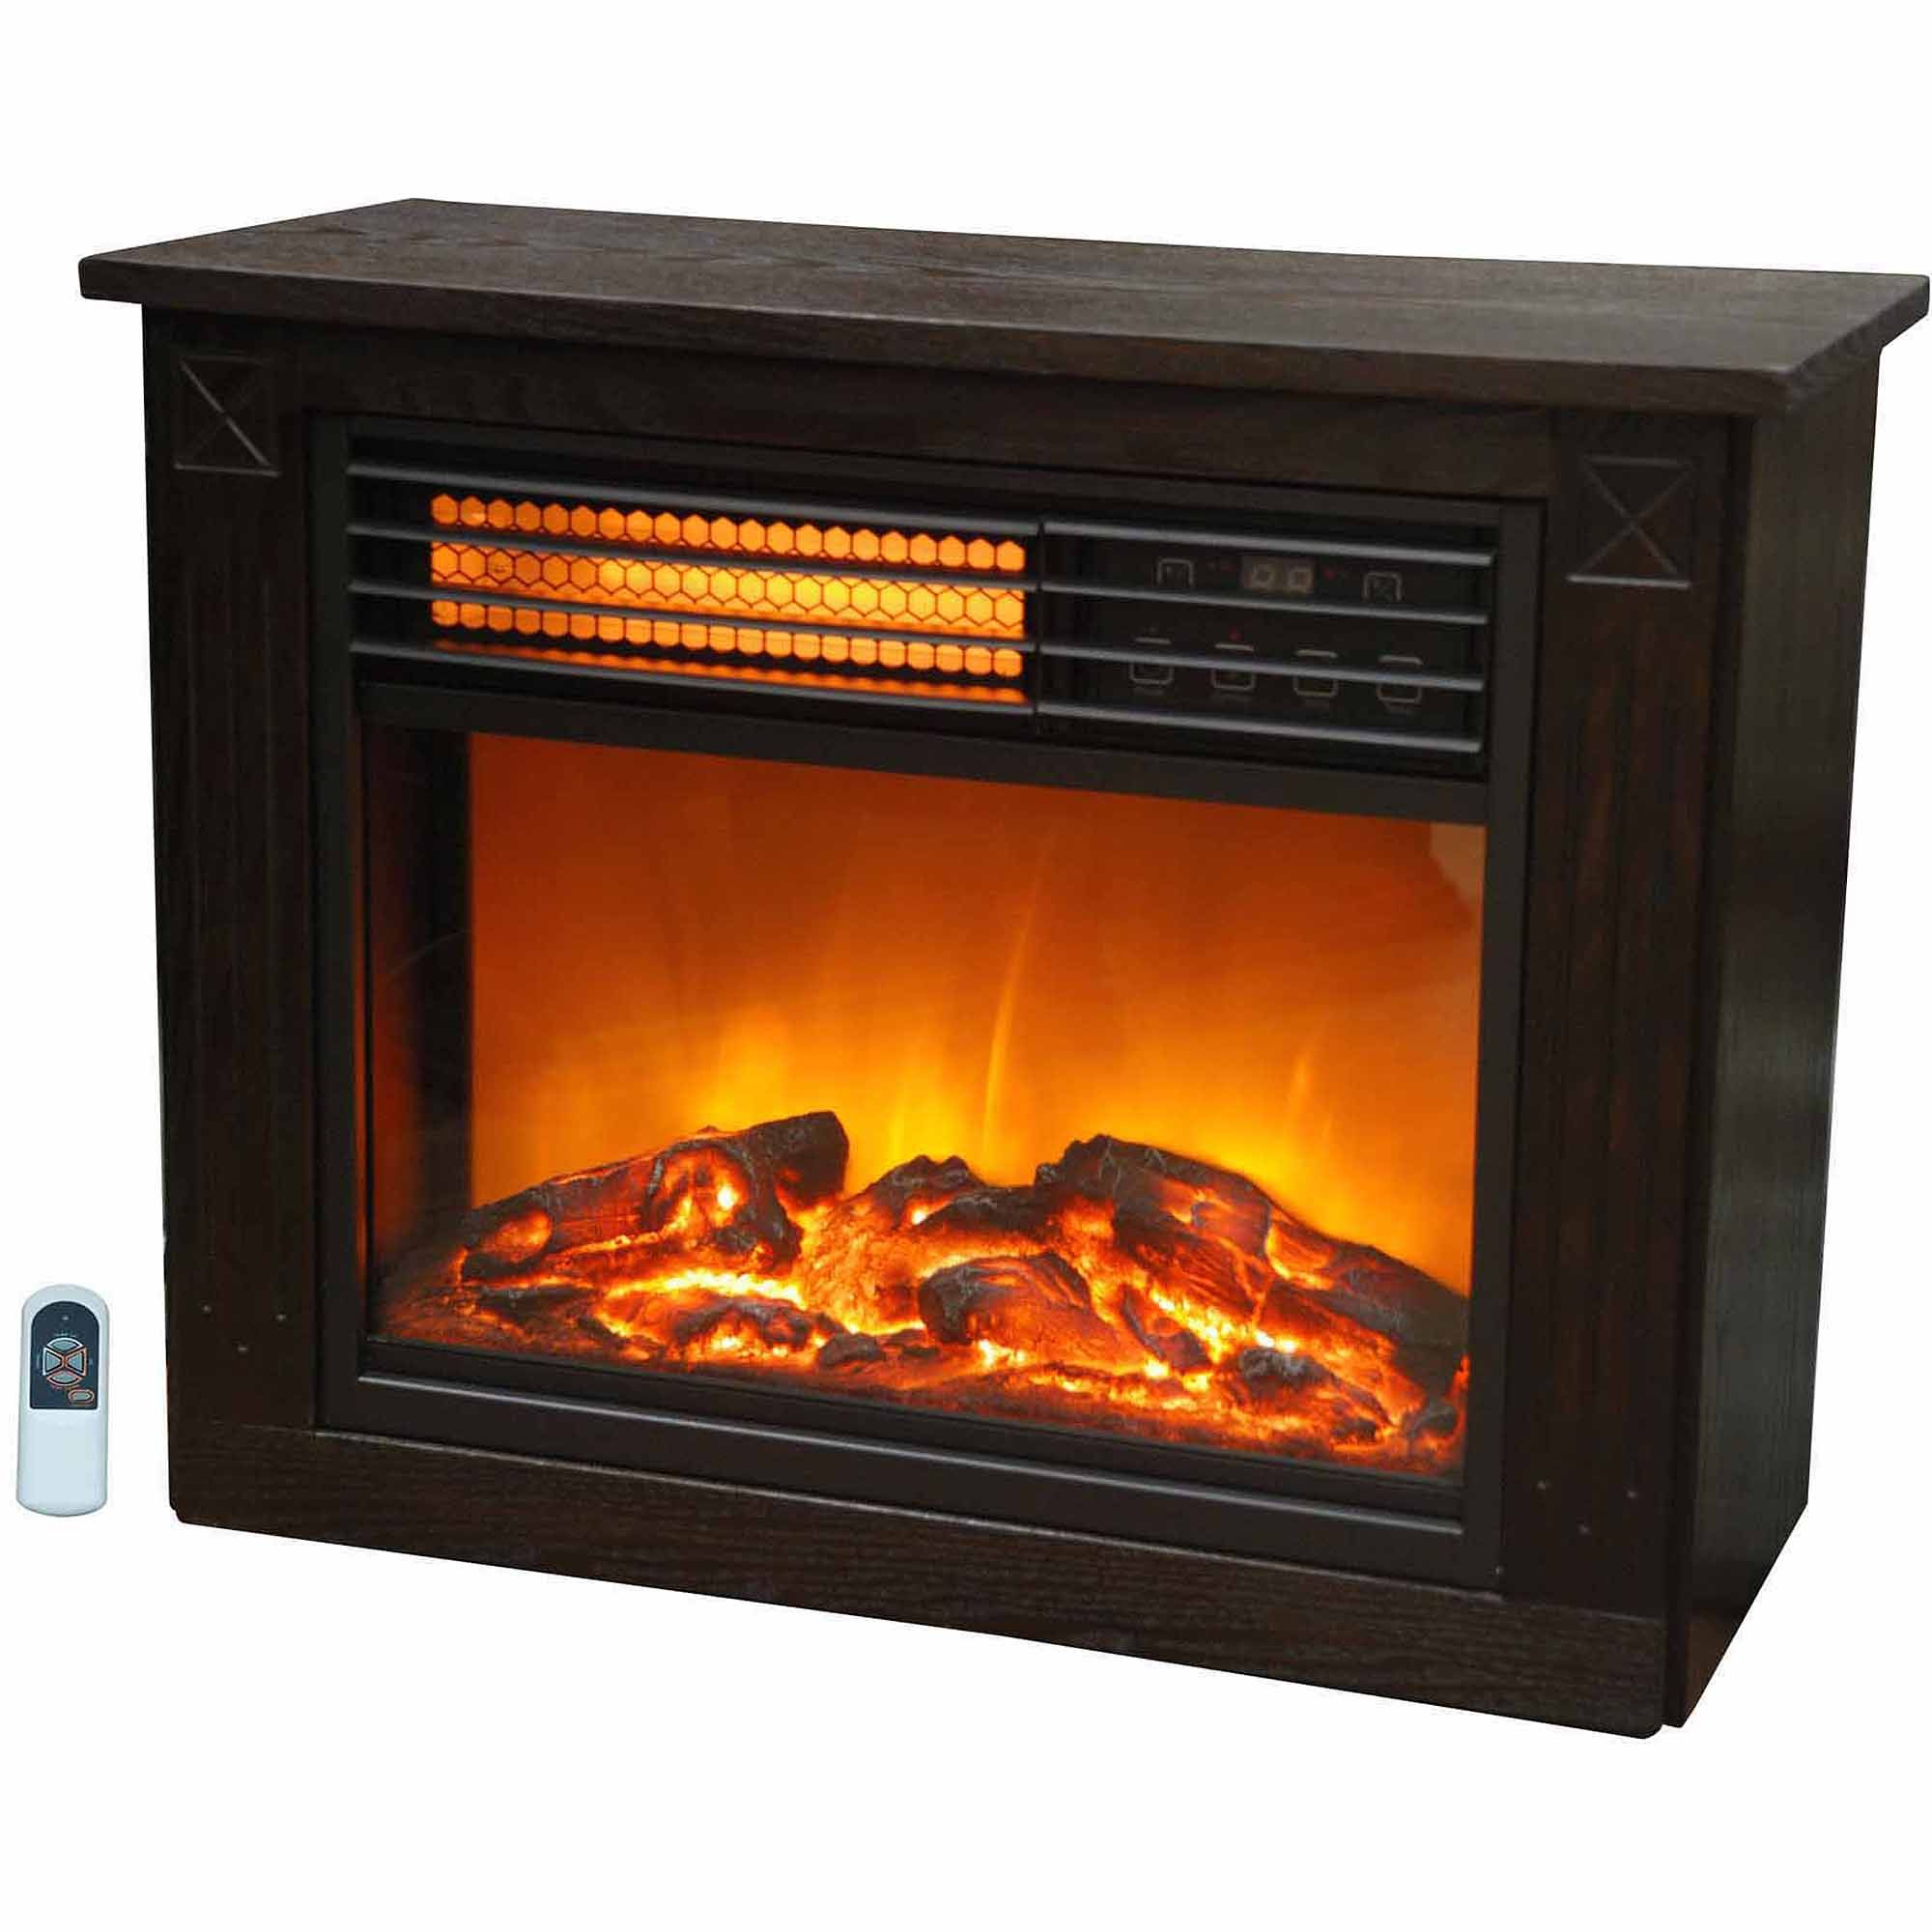 heat shop category electric exclusive tool most with model flame inserts heaters realistic fireplaces tools northern fireplace stoves profusion btu advantage equipment color